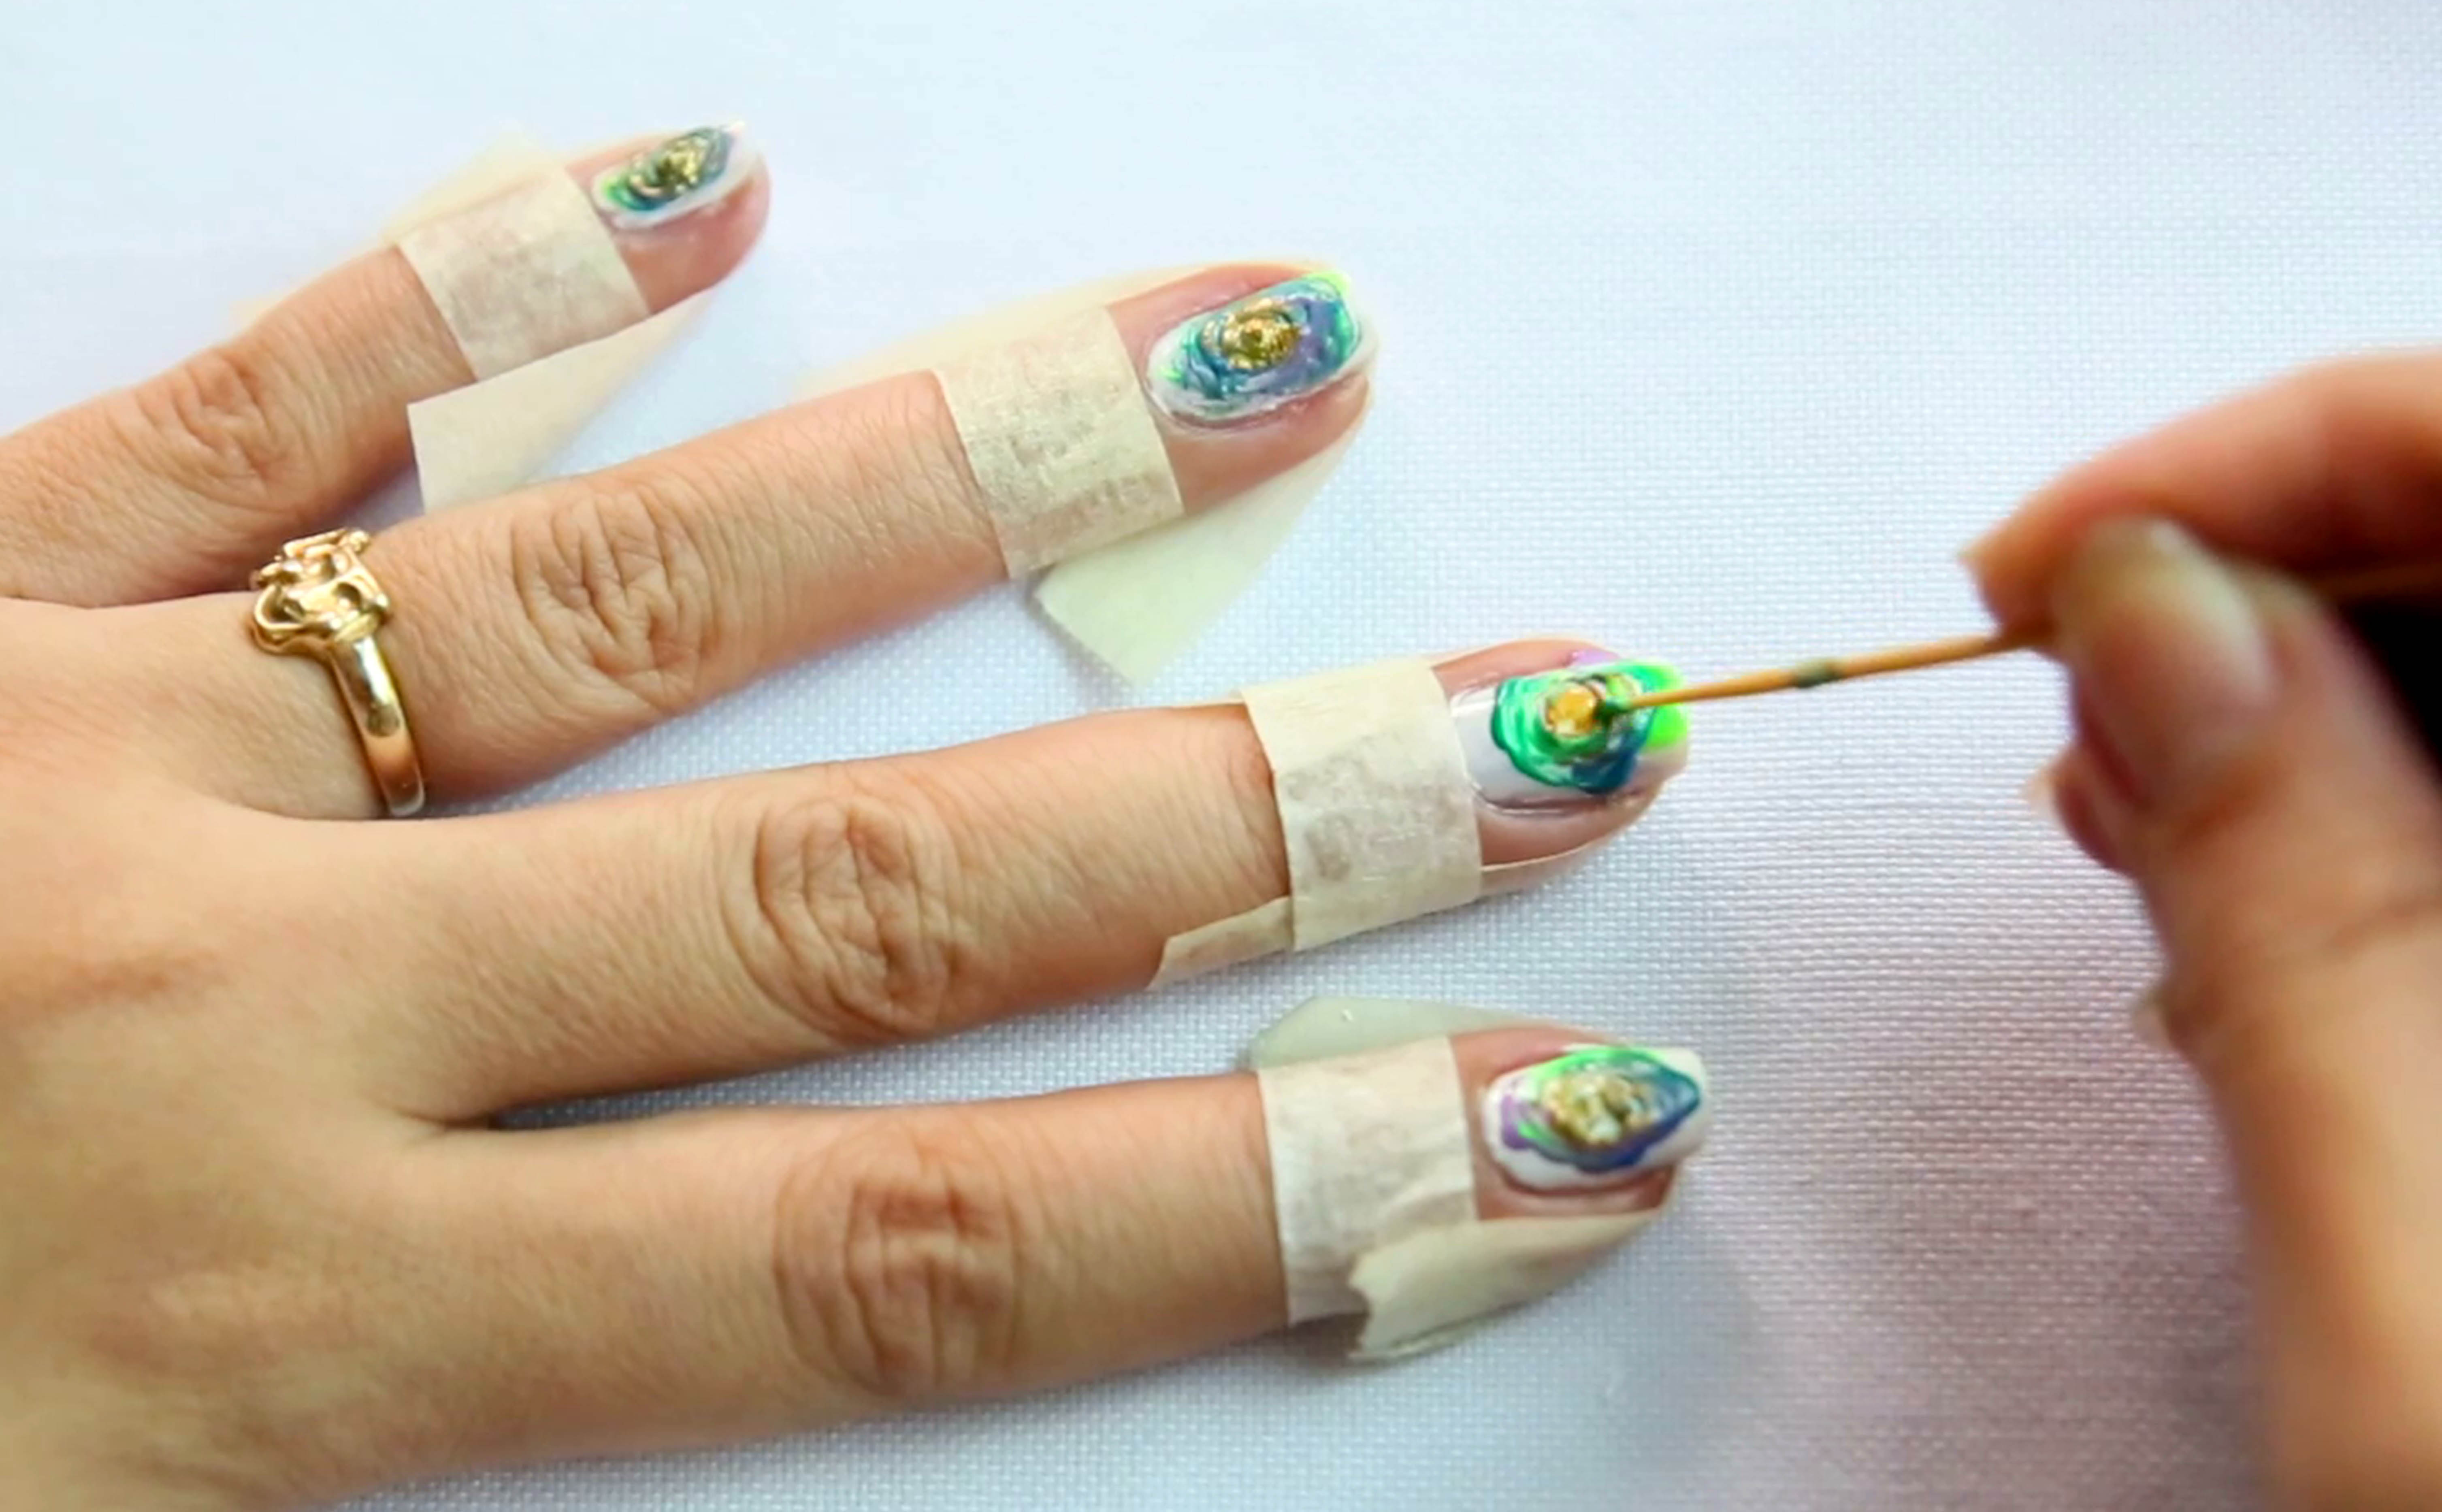 View Images How To Do Easy Nail Art With A Toothpick For Beginners Steps